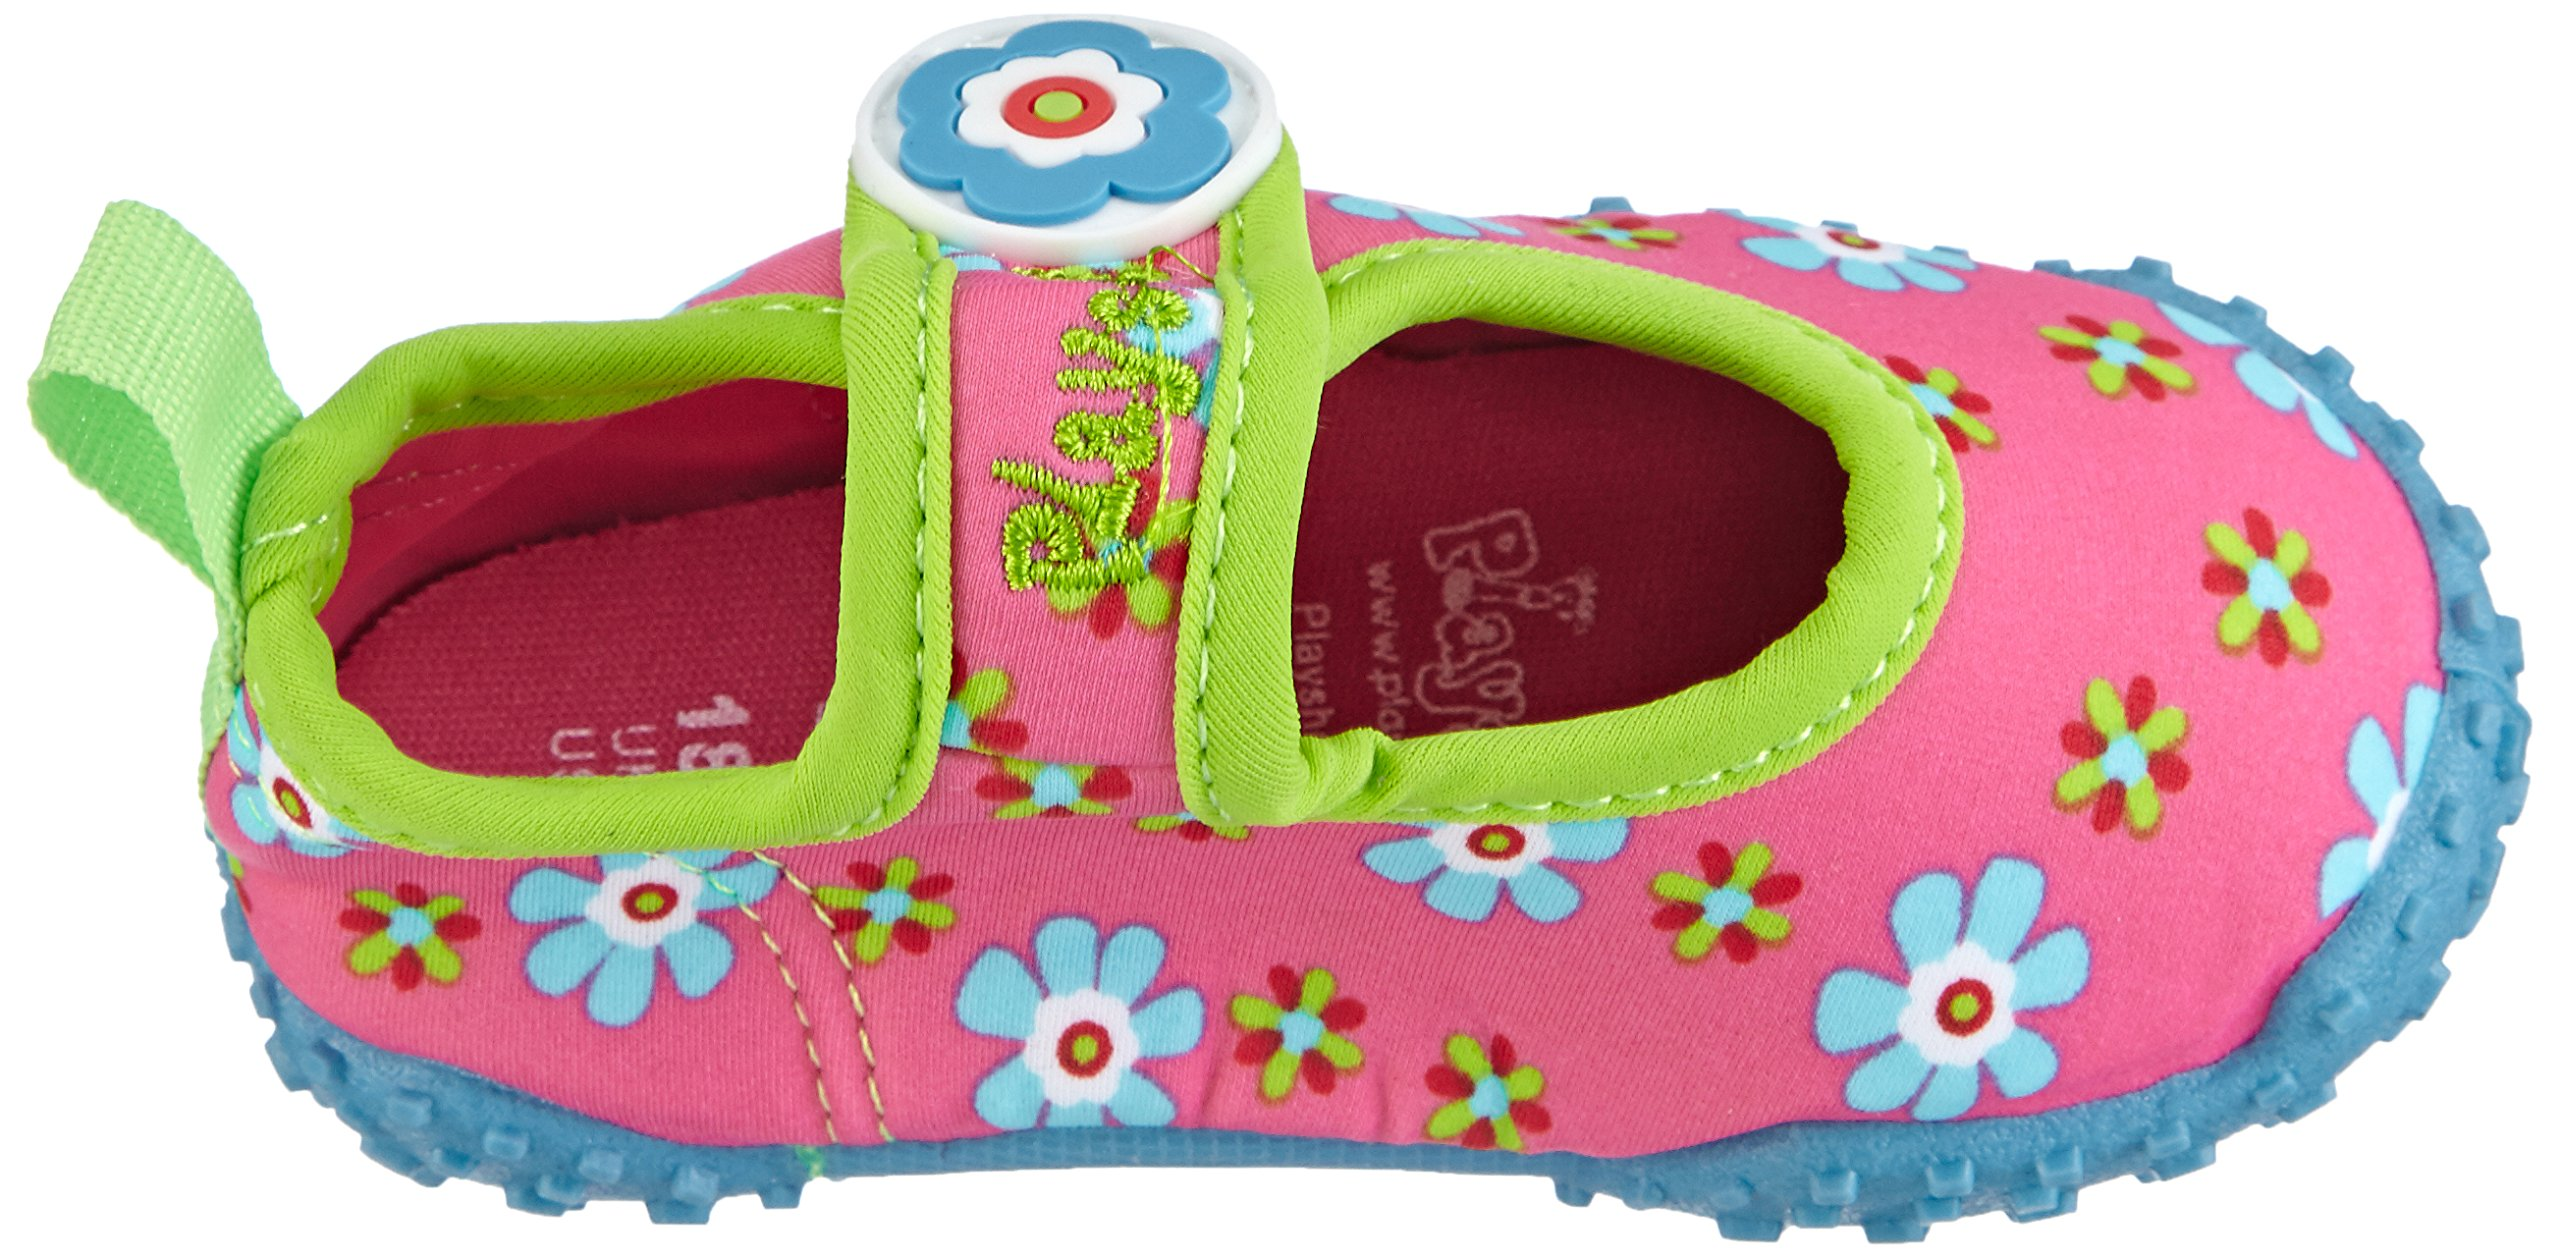 Playshoes Girl's UV Protection Flower Collection Aqua Swimming/Beach Shoes (4.5 M US Toddler) by Playshoes (Image #8)